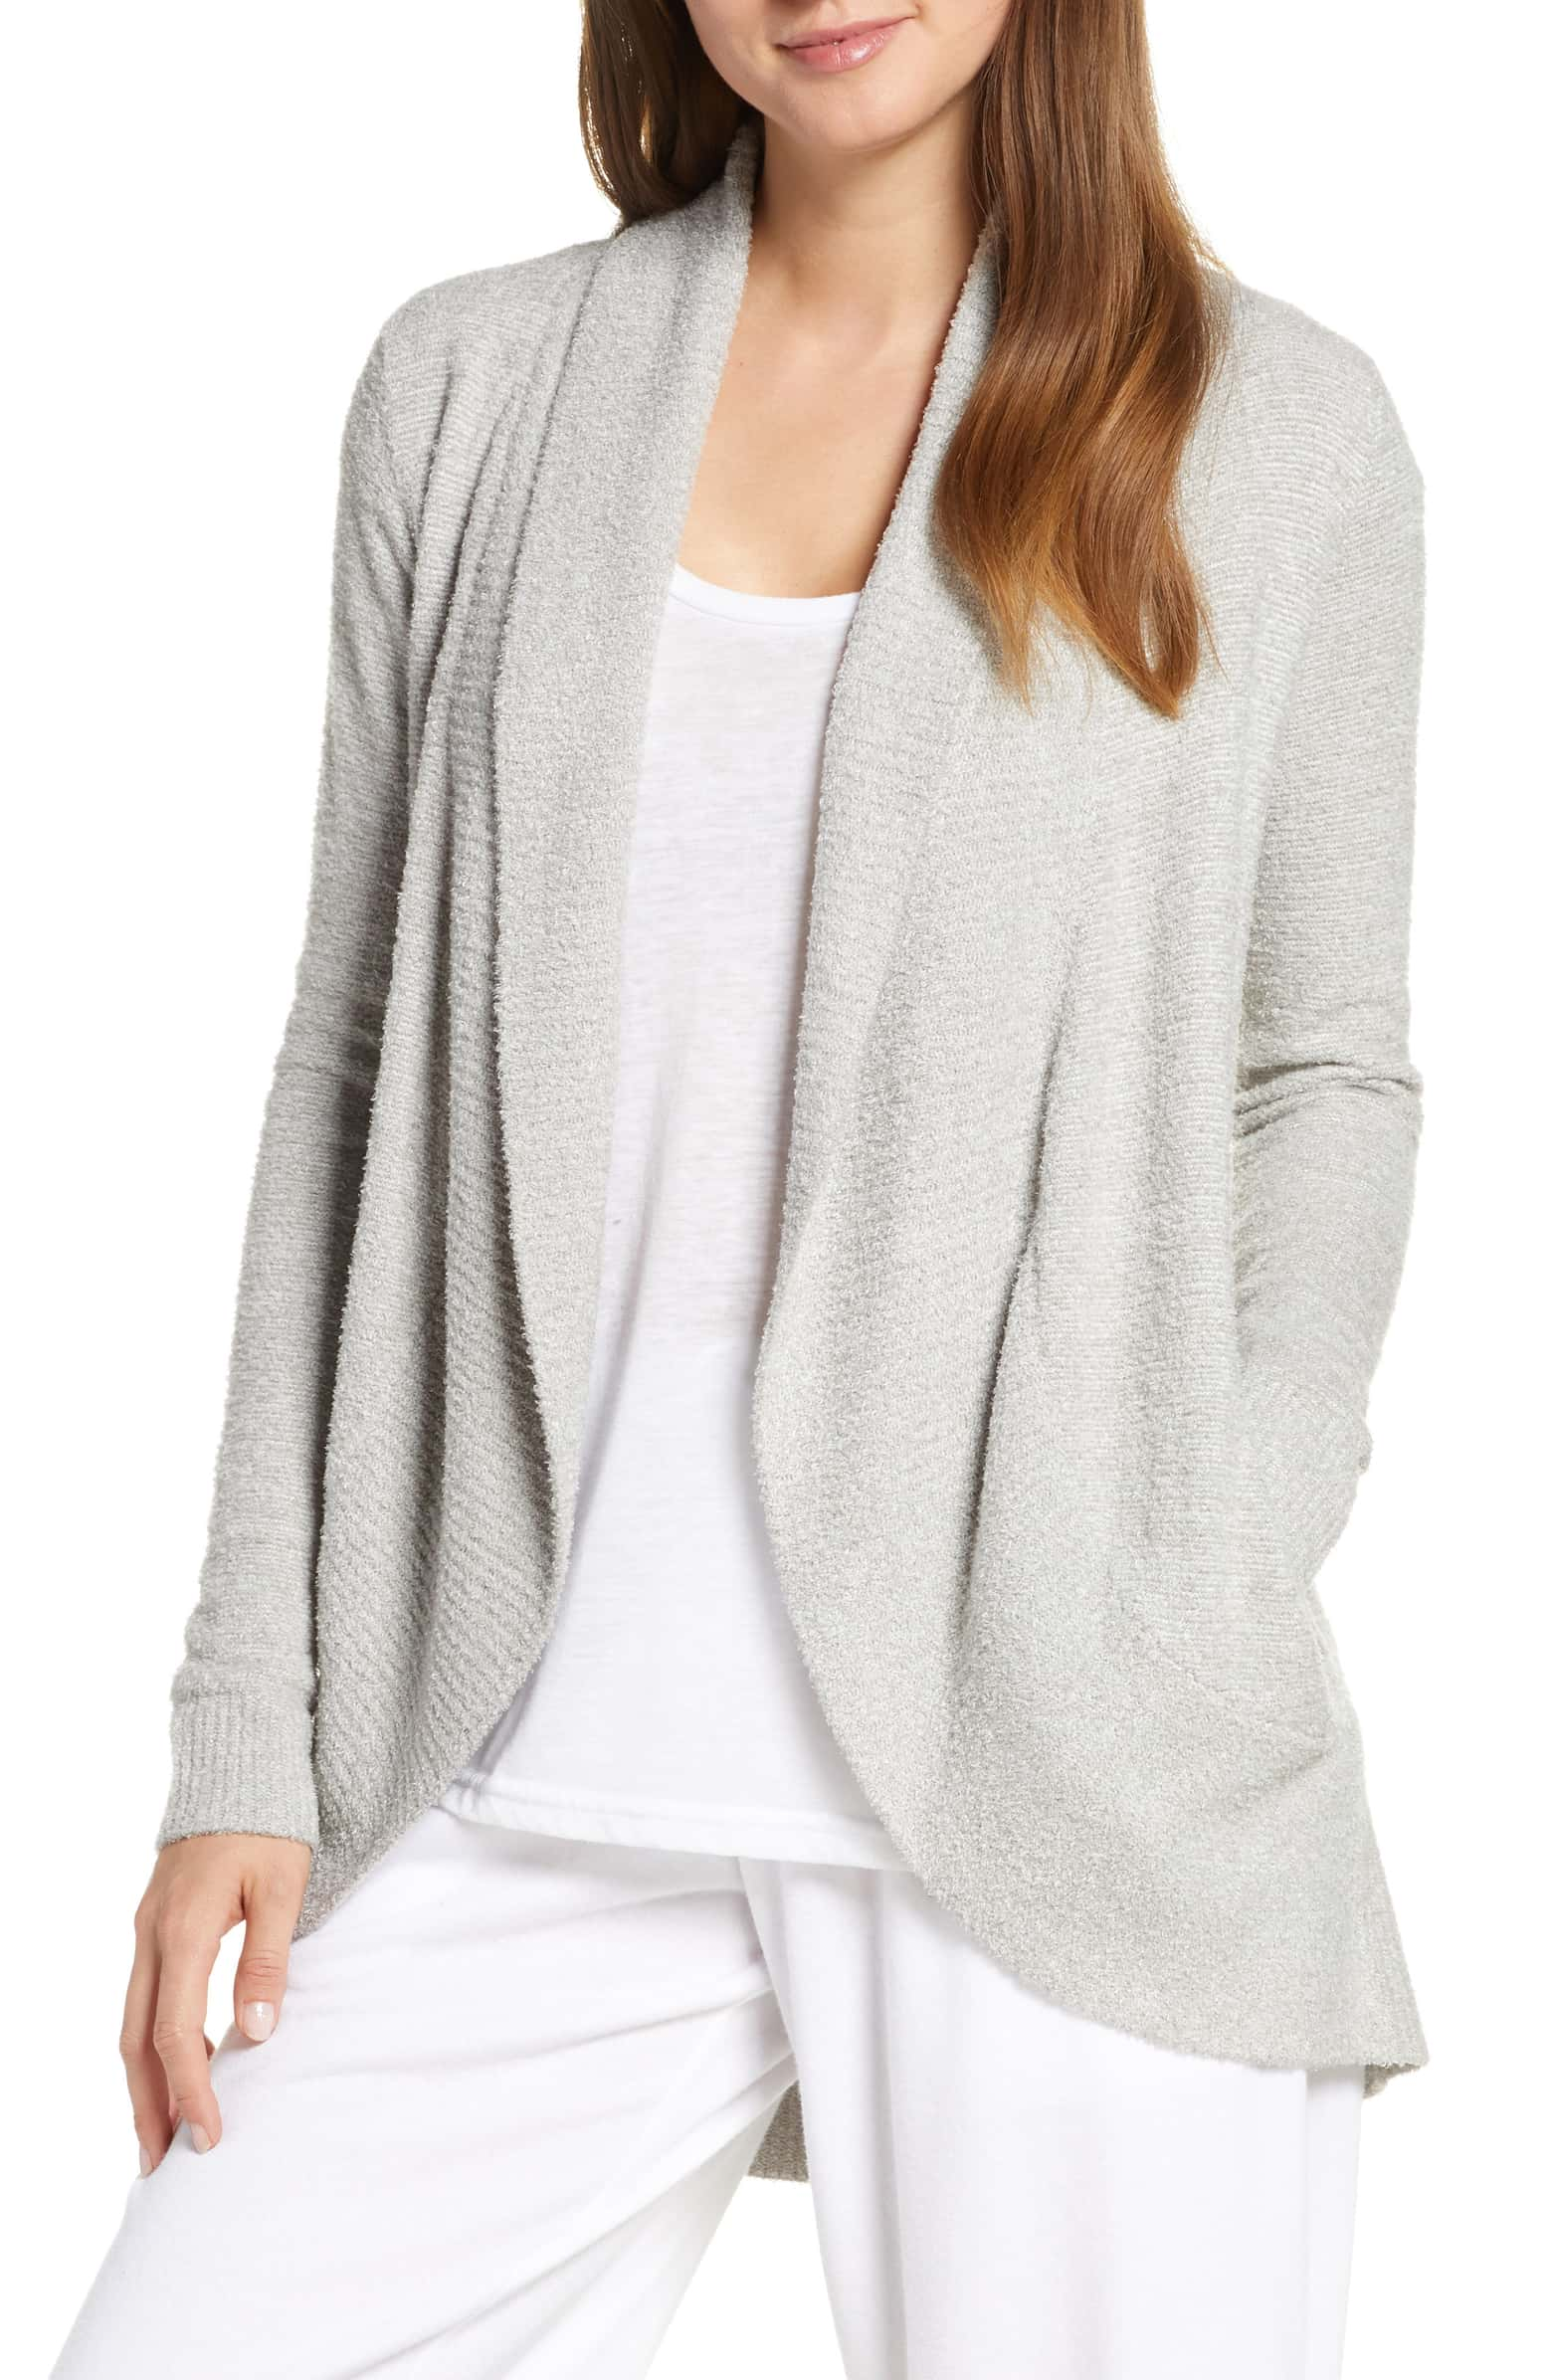 Barefoot Dreams Cardigan - SALE: $76.90, after sale: $116